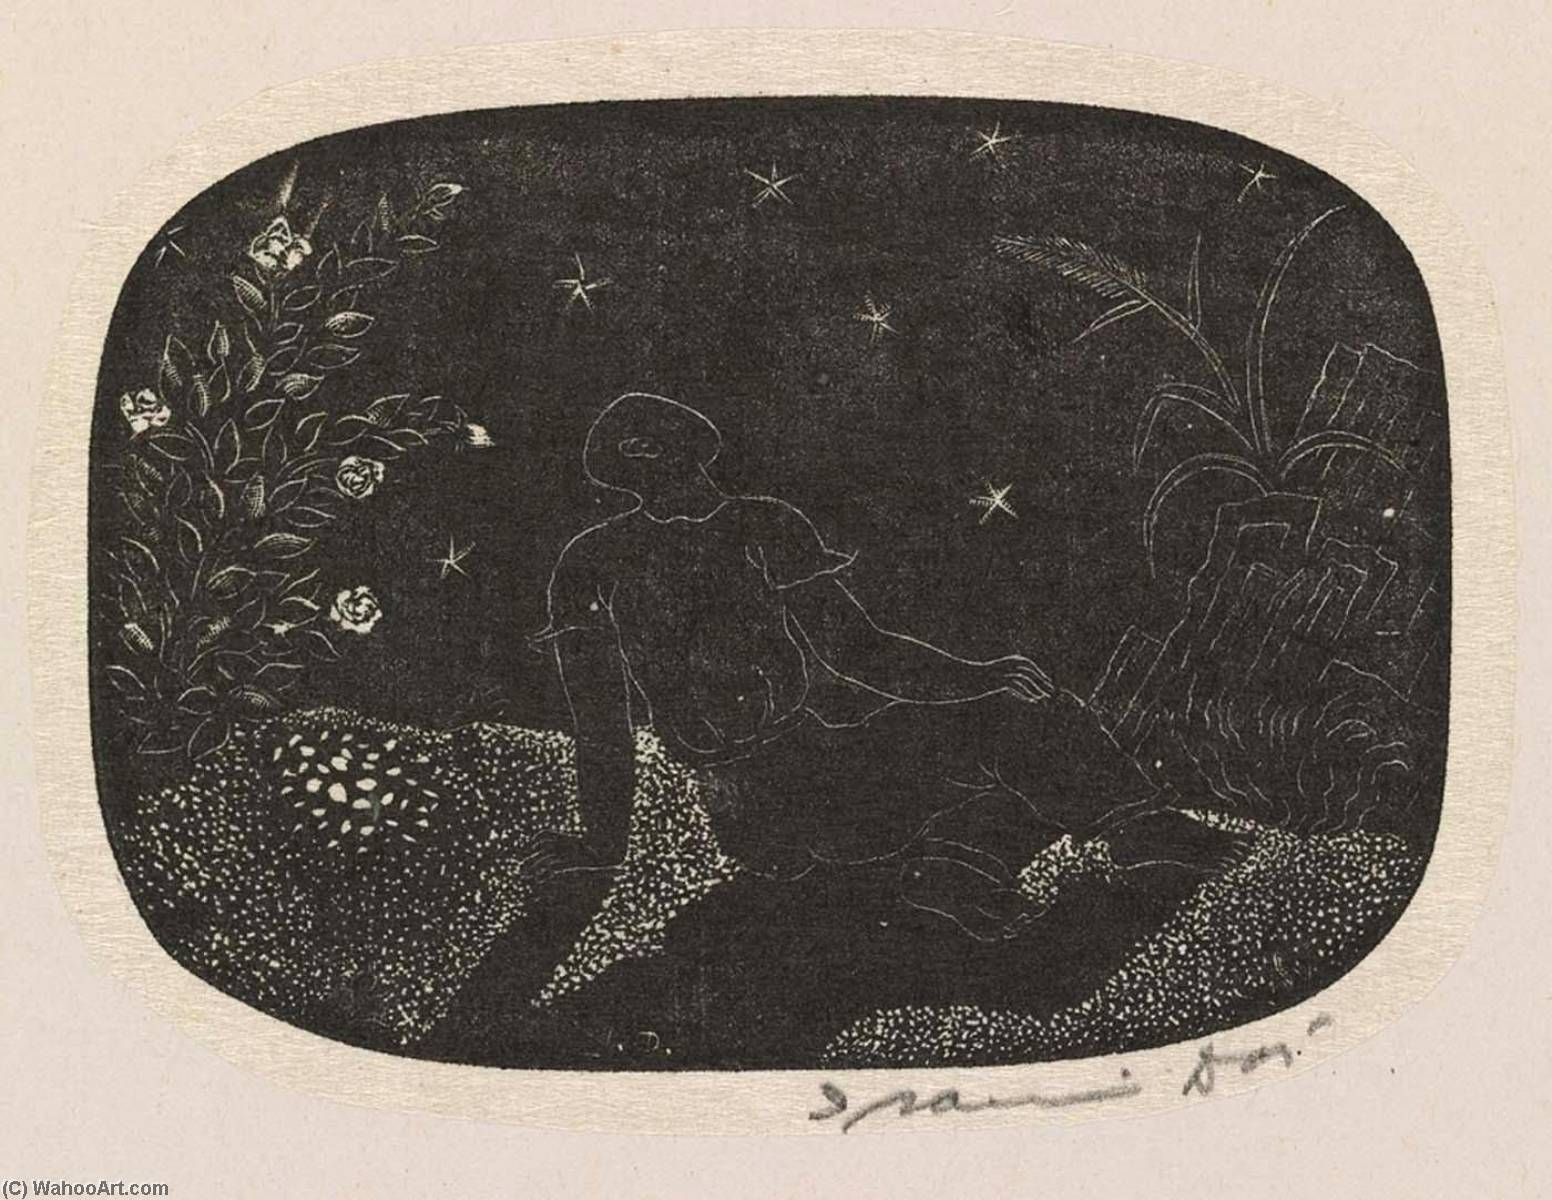 (The Wayward Muse, portfolio) Here Beneath the Canopy of Stars I Shall Sleep a Thousand Years of Dreamless Nights, Paper by Isami Doi